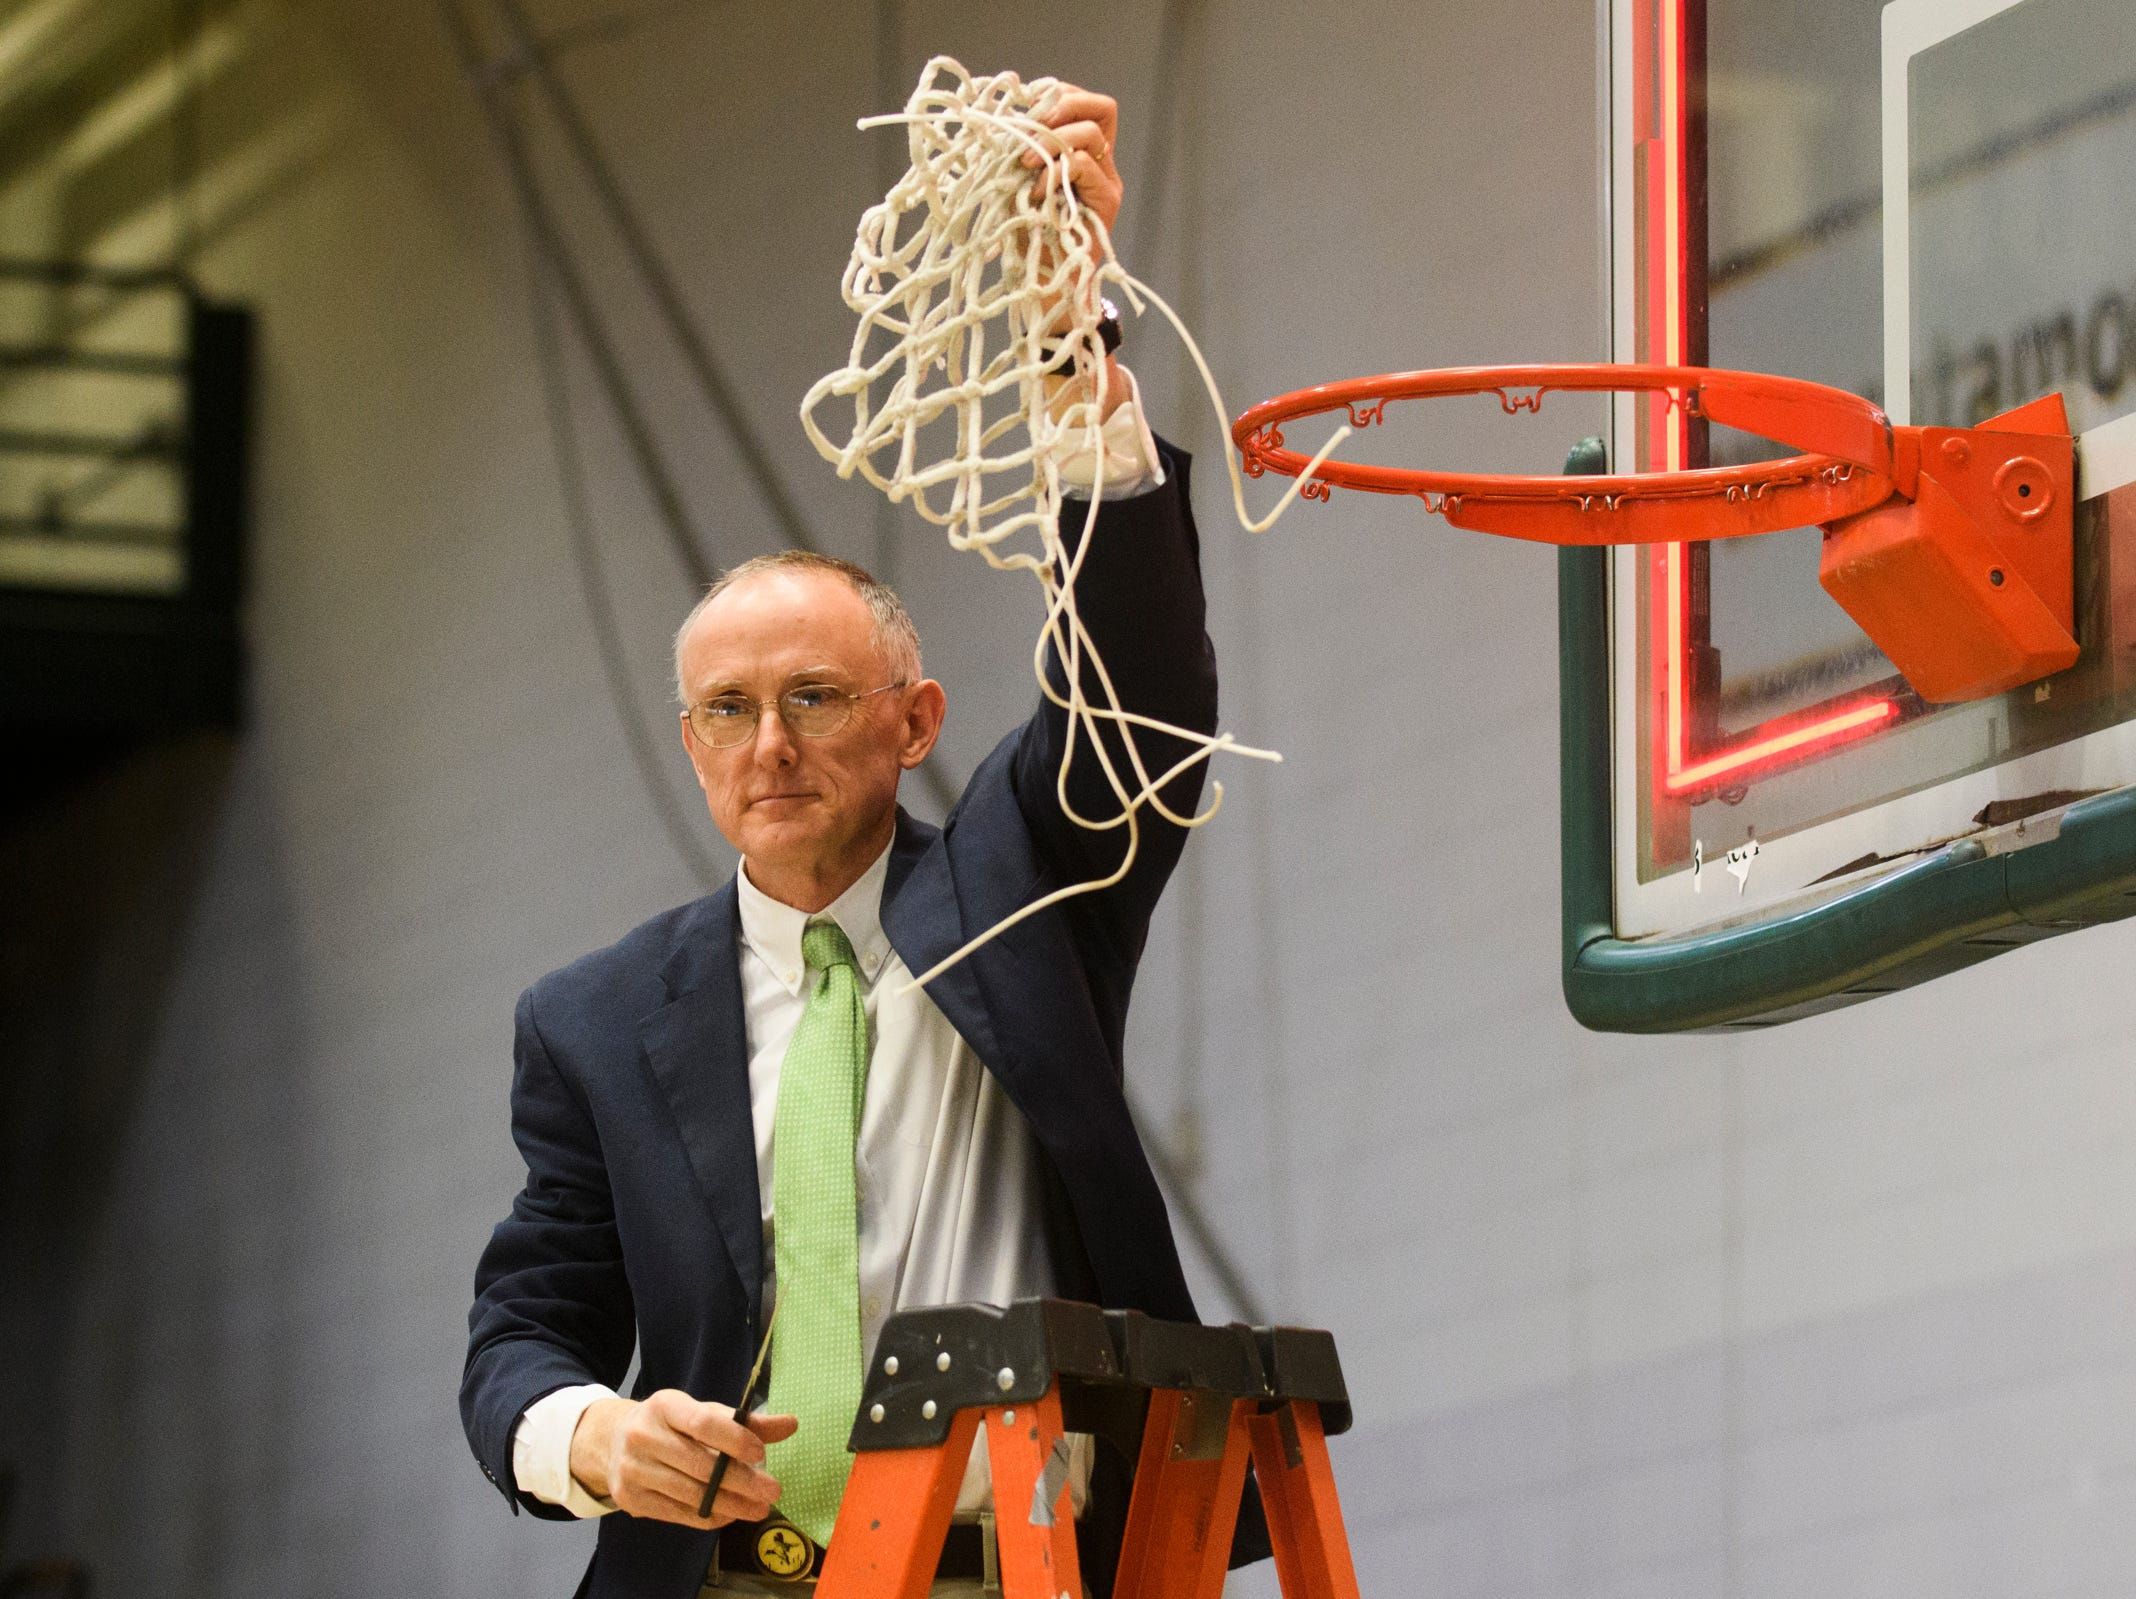 St. Johnsbury head coachJack Driscoll holds up the net for the fans during the division I girls basketball championship basketball game between the St. Johnsbury Hilltoppers and the Champlain Valley Union Redhawks at Patrick Gym on Sunday afternoon March 10, 2019 in Burlington, Vermont.